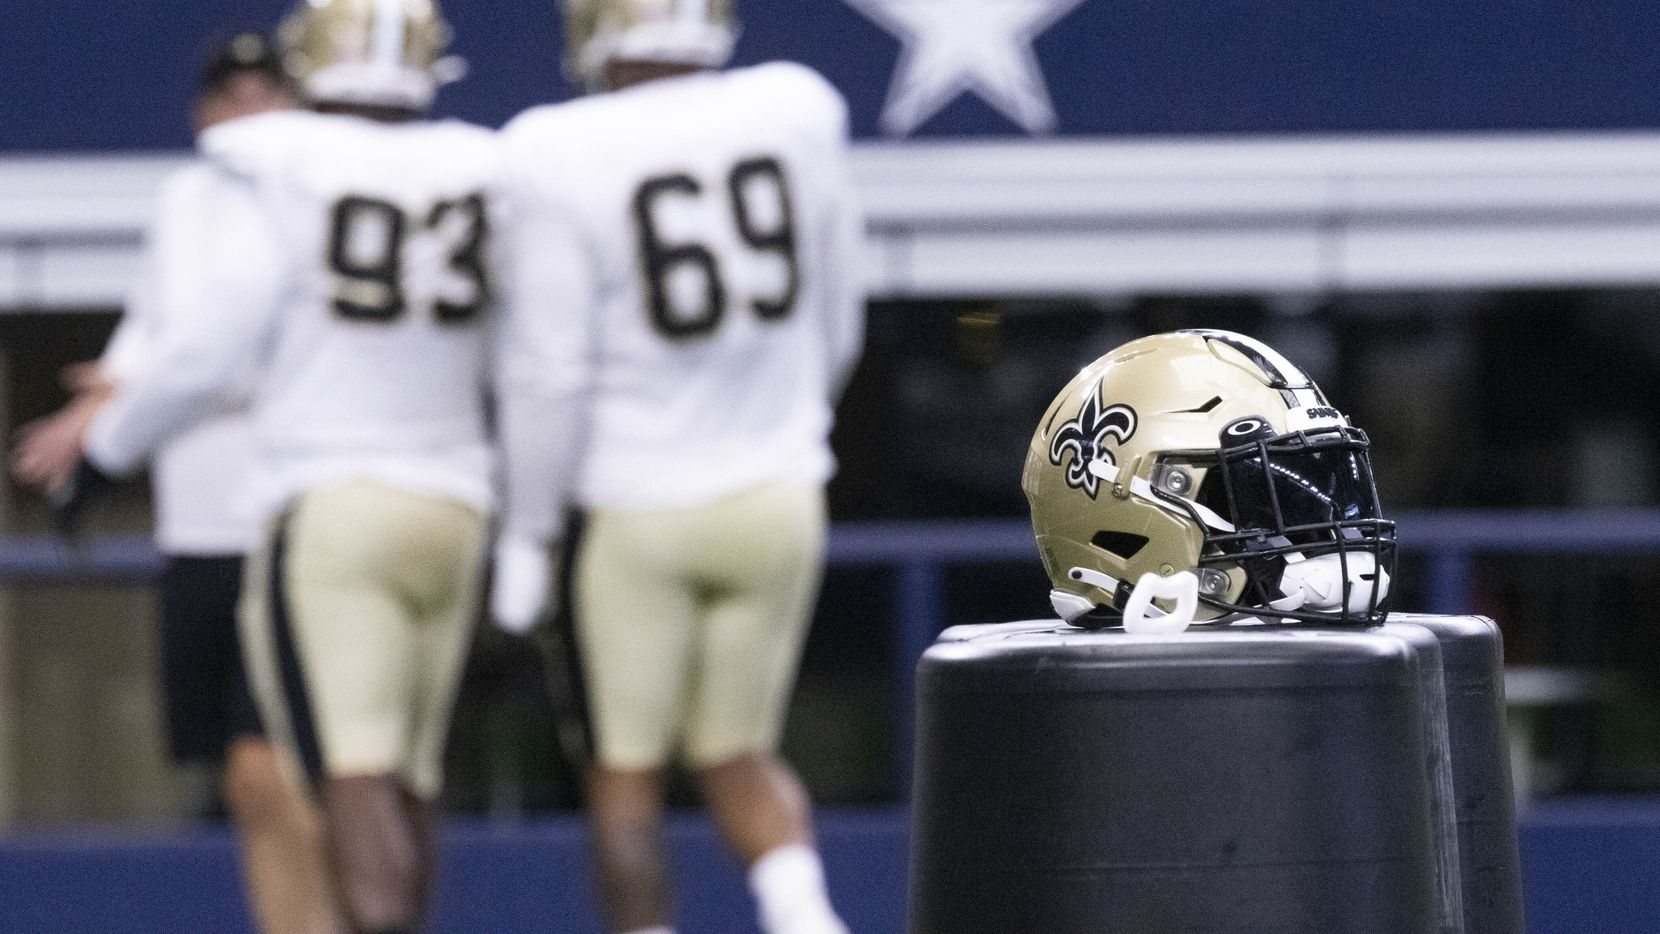 New Orleans Saints practice on Monday, Aug. 30, 2021, at AT&T Stadium in Arlington. The New Orleans Saints are practicing at AT&T Stadium after evacuating from Hurricane Ida.